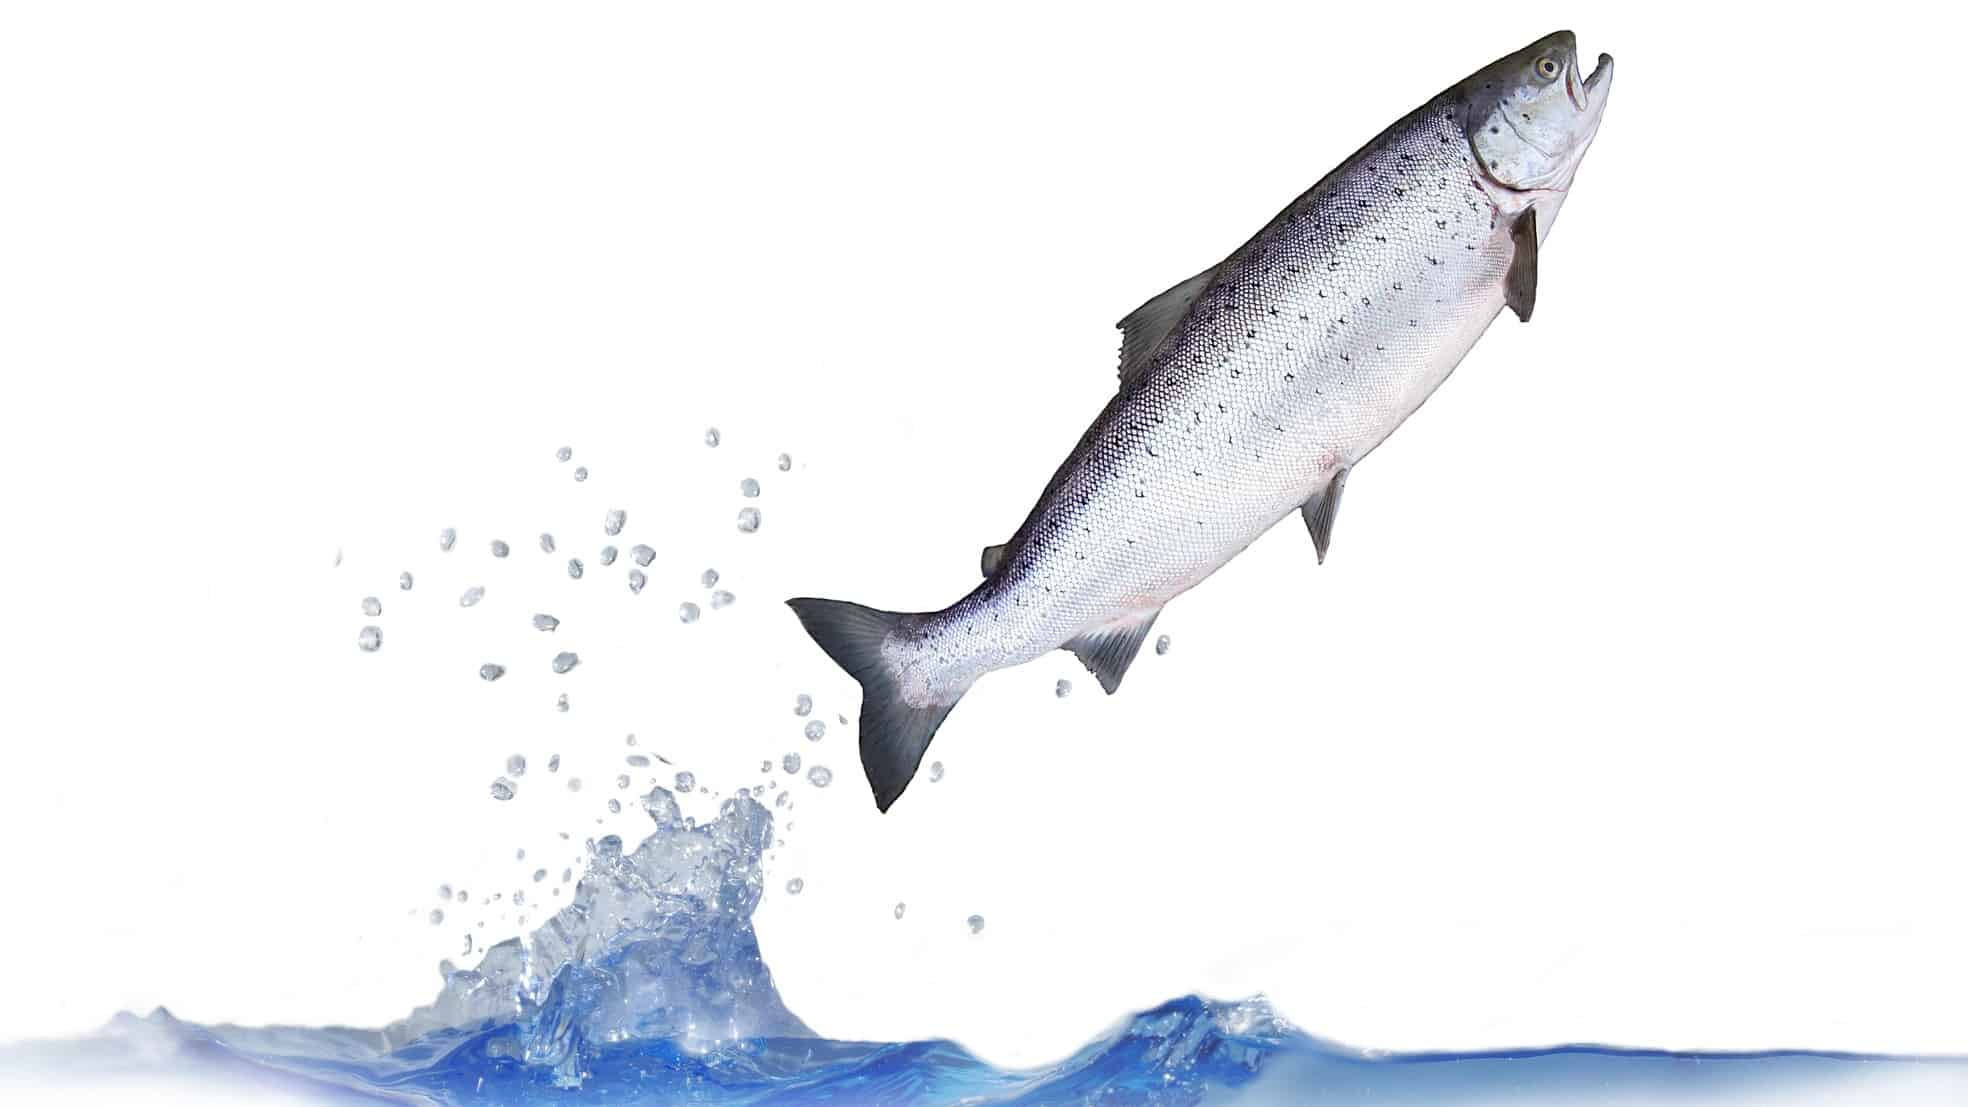 asx share price jump represented by salmon jumping out of water